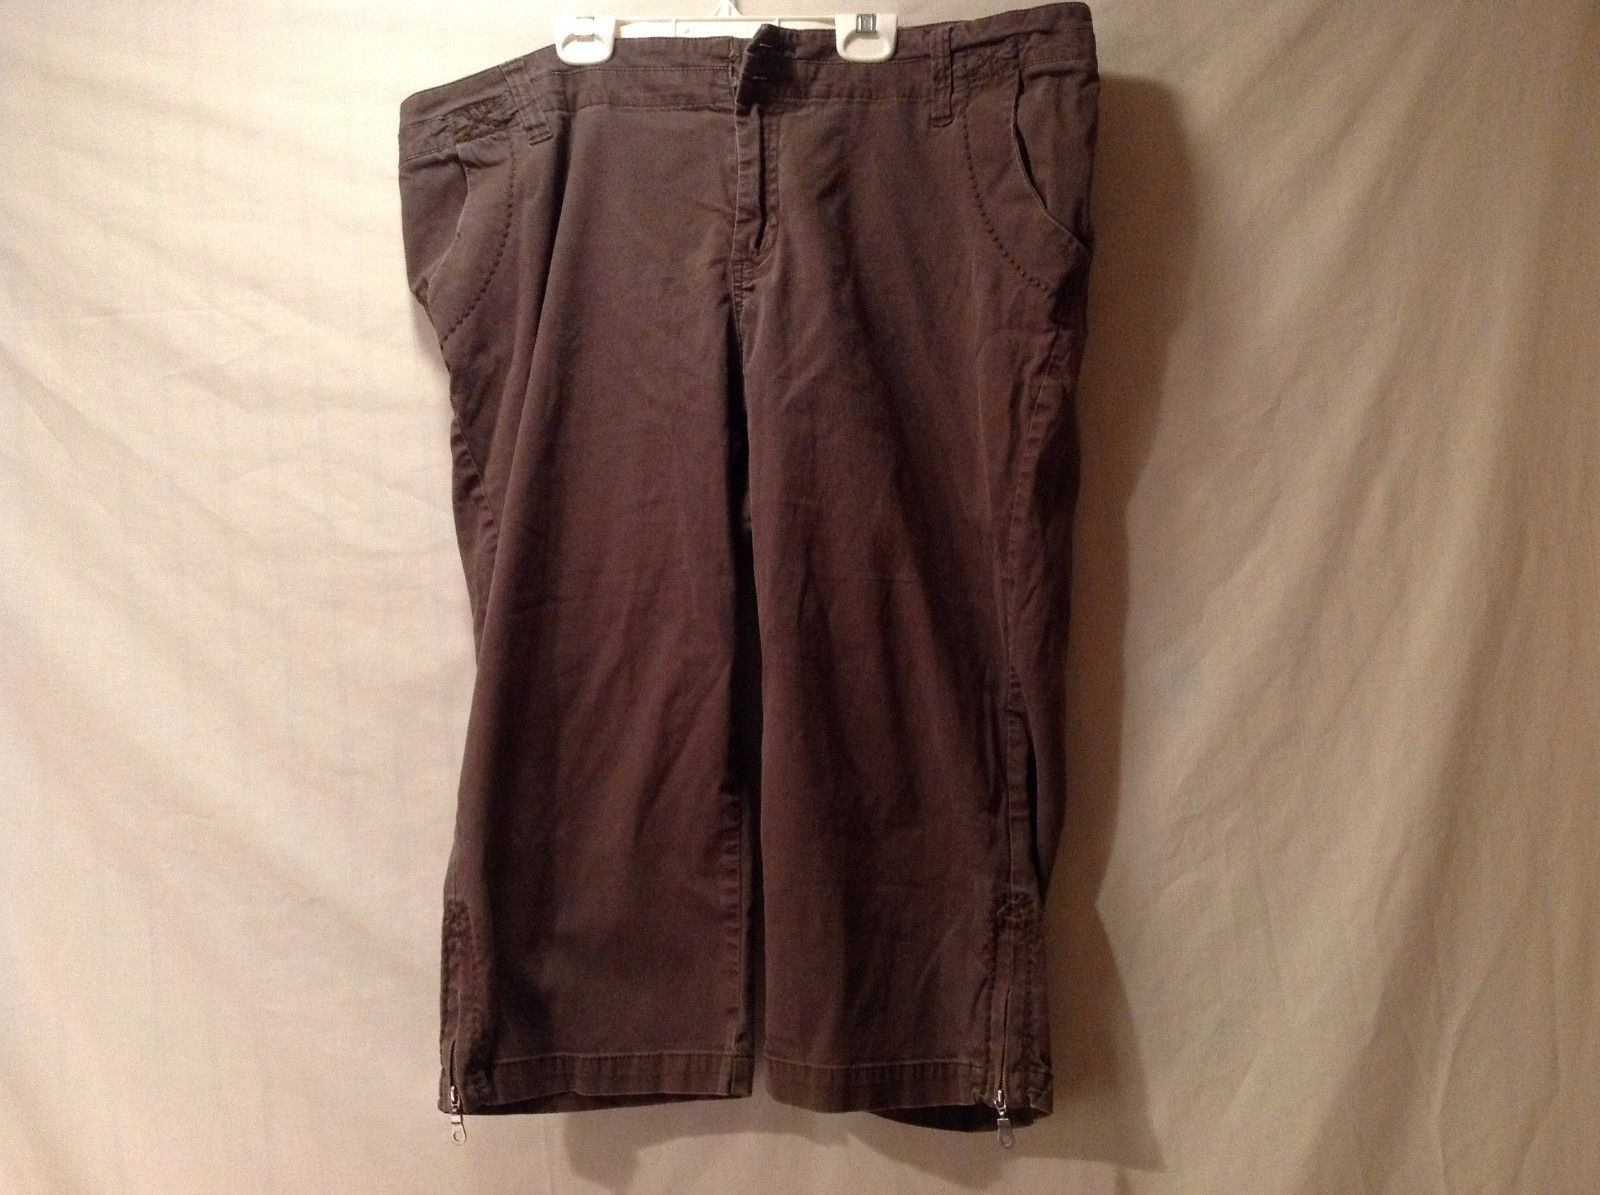 Great Condition Lane Bryant Size 18 Cotton Blend Brown Pants Adjustable Ankle